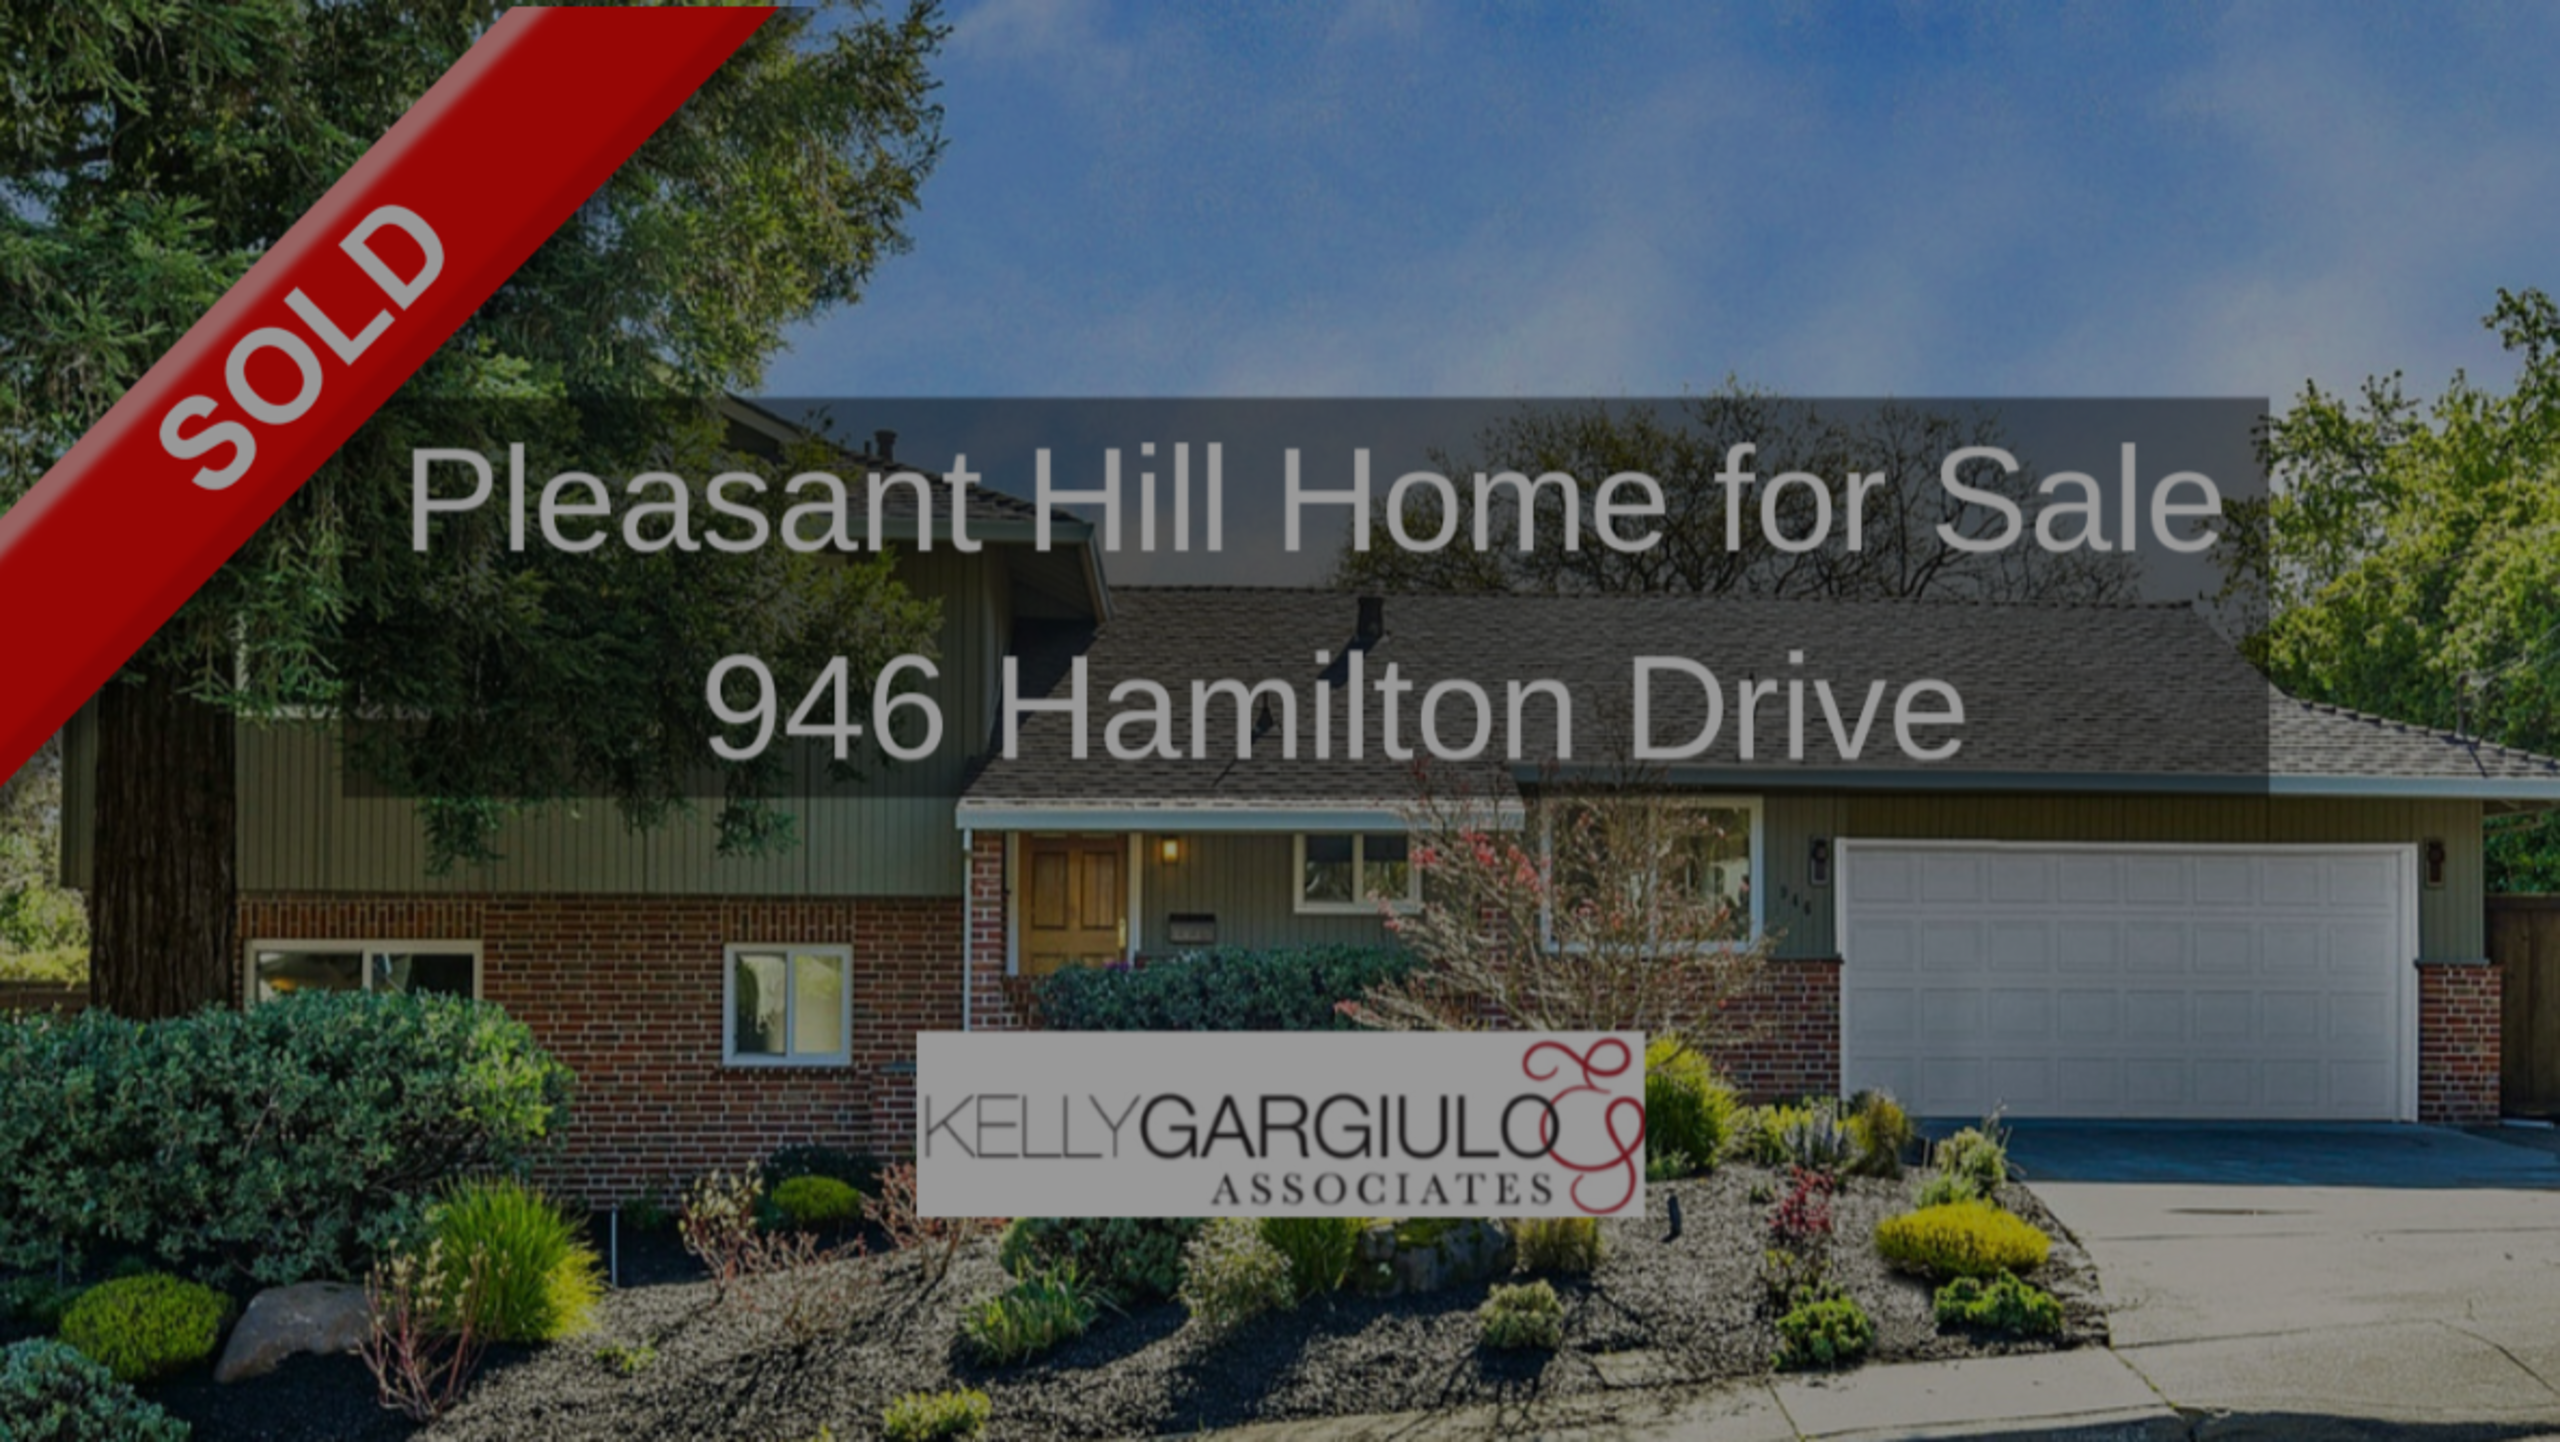 945 Hamilton Drive in Pleansant Hill